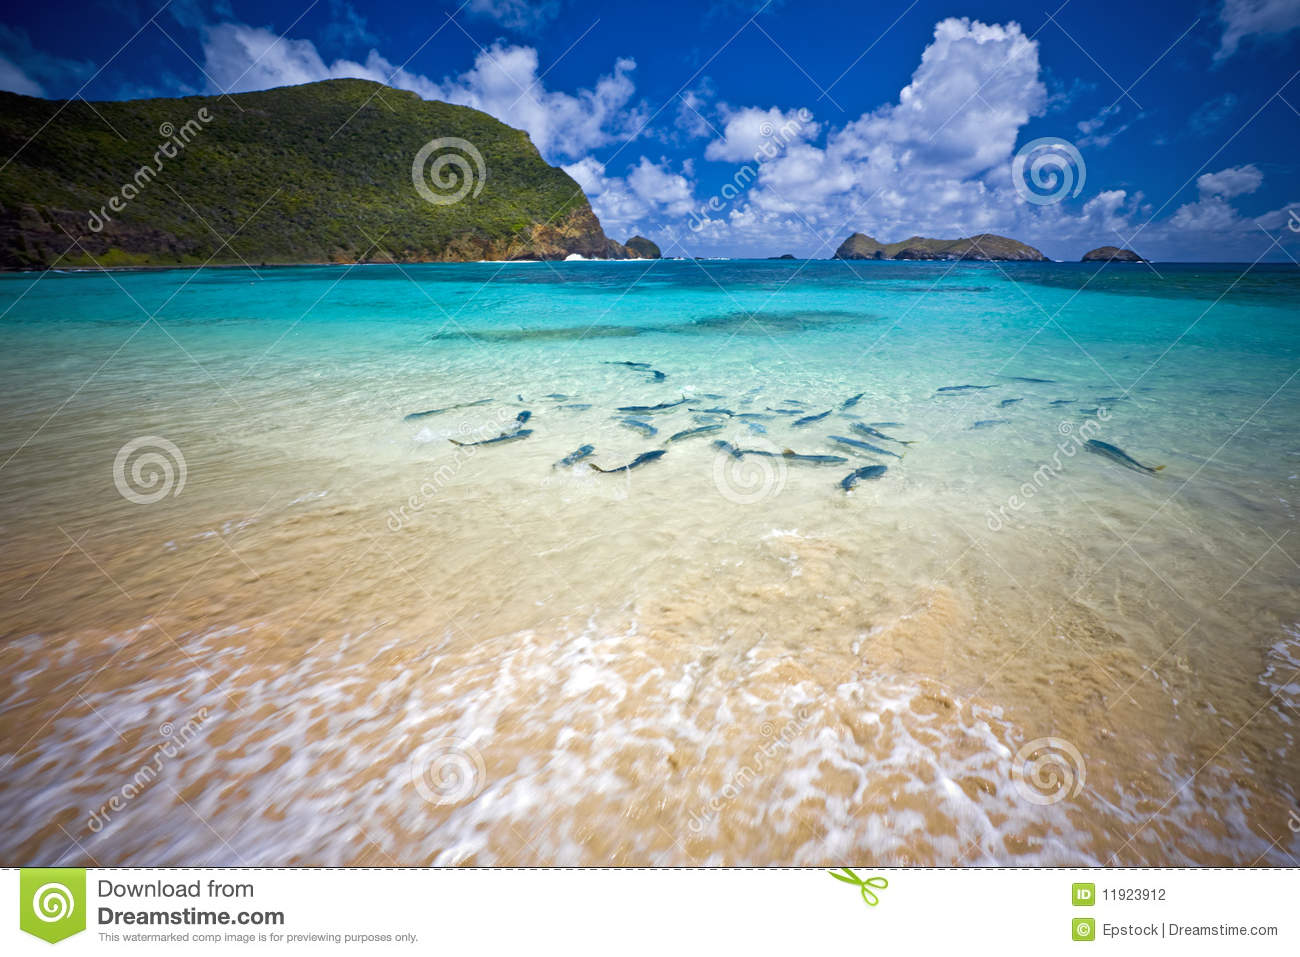 King fish at the beach lord howe island australia stock for How to fish from the beach